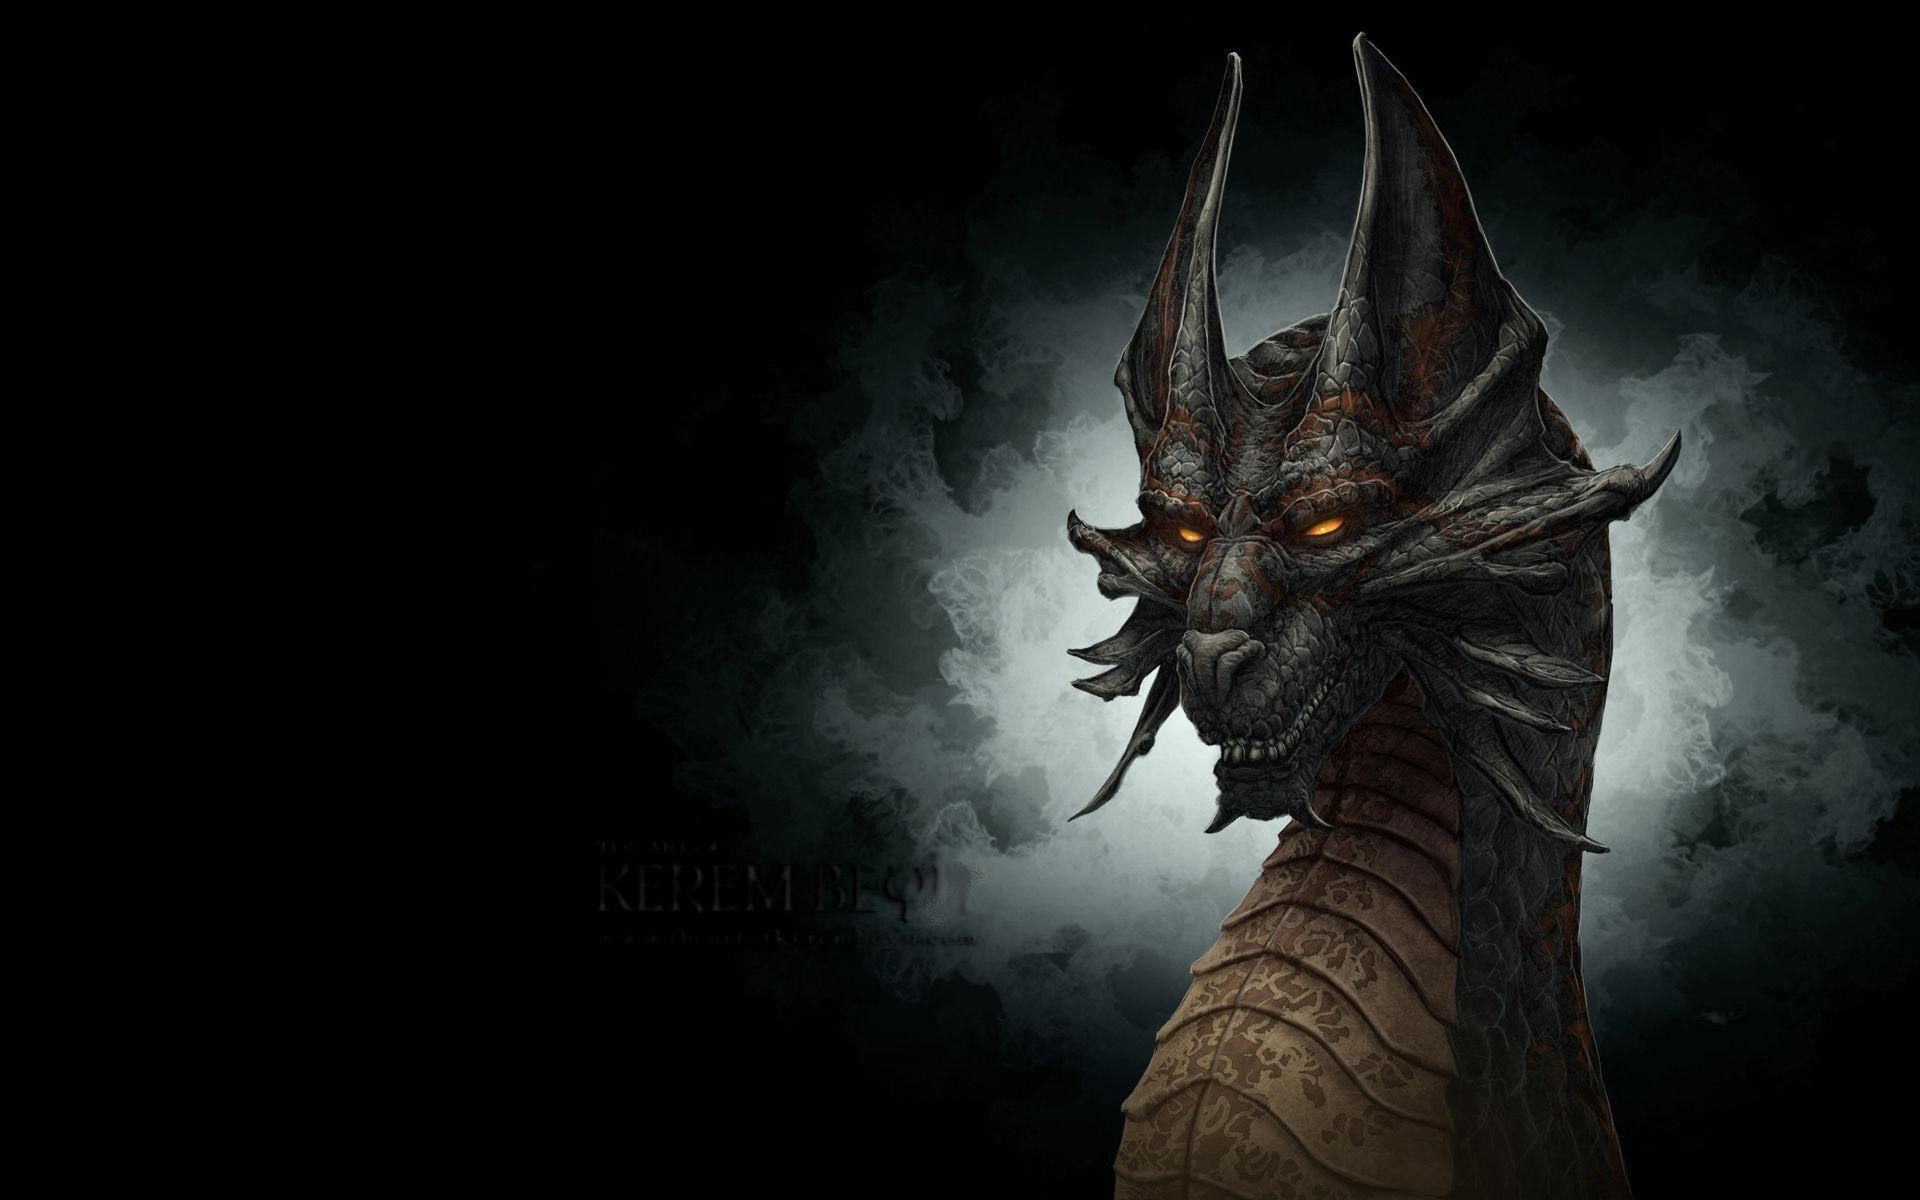 Dragon Background 1 Download Free Amazing Full HD Backgrounds For